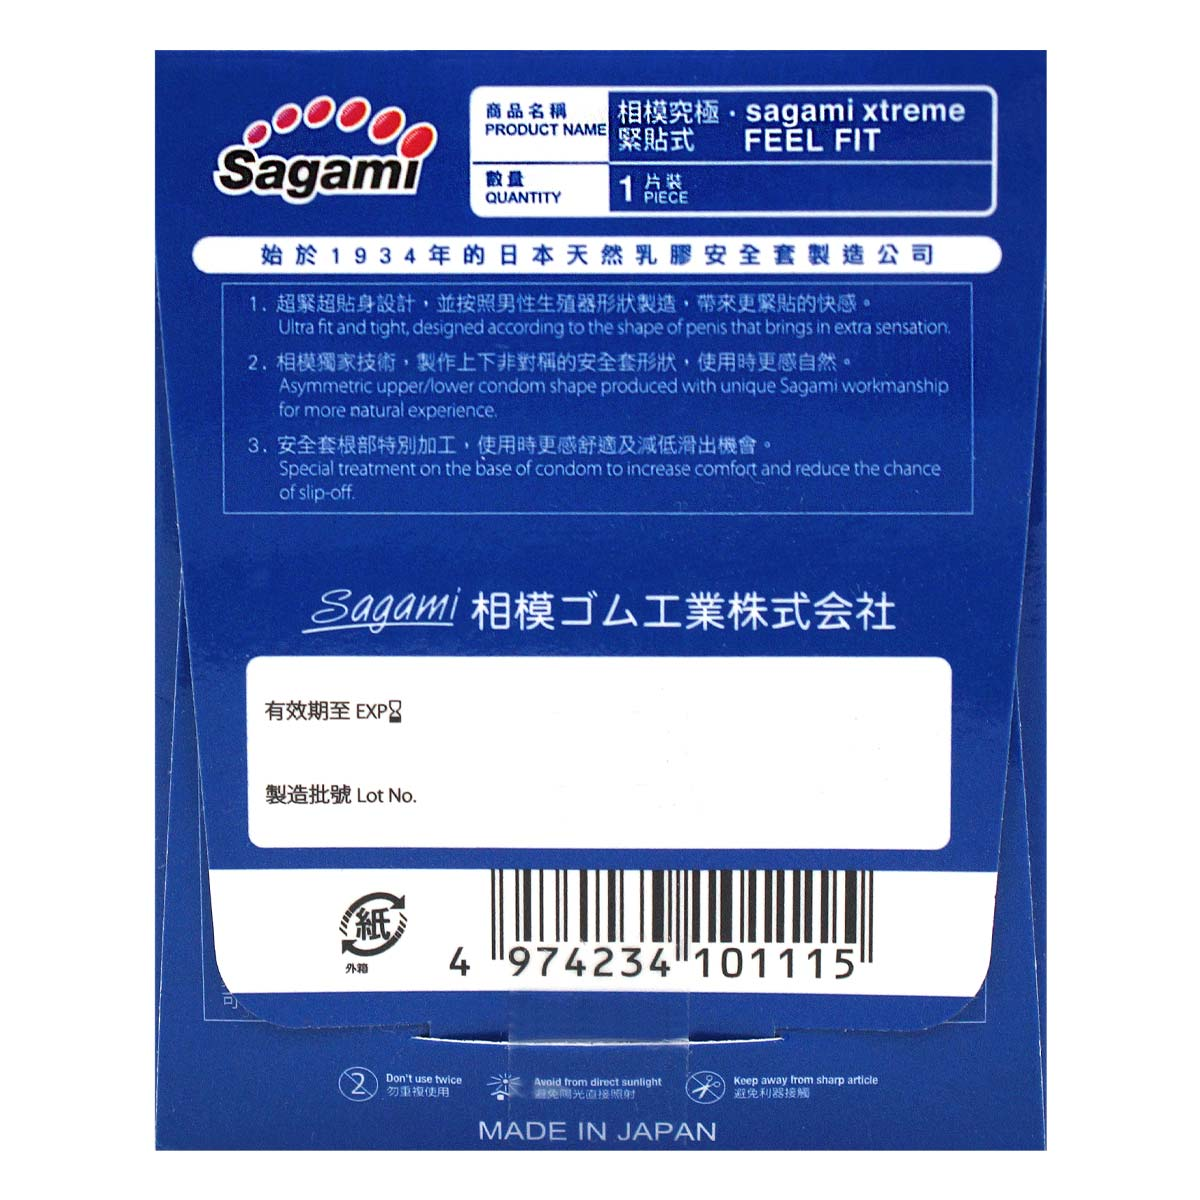 Sagami Xtreme Feel Fit (2nd generation) 51mm 1's Pack Latex Condom